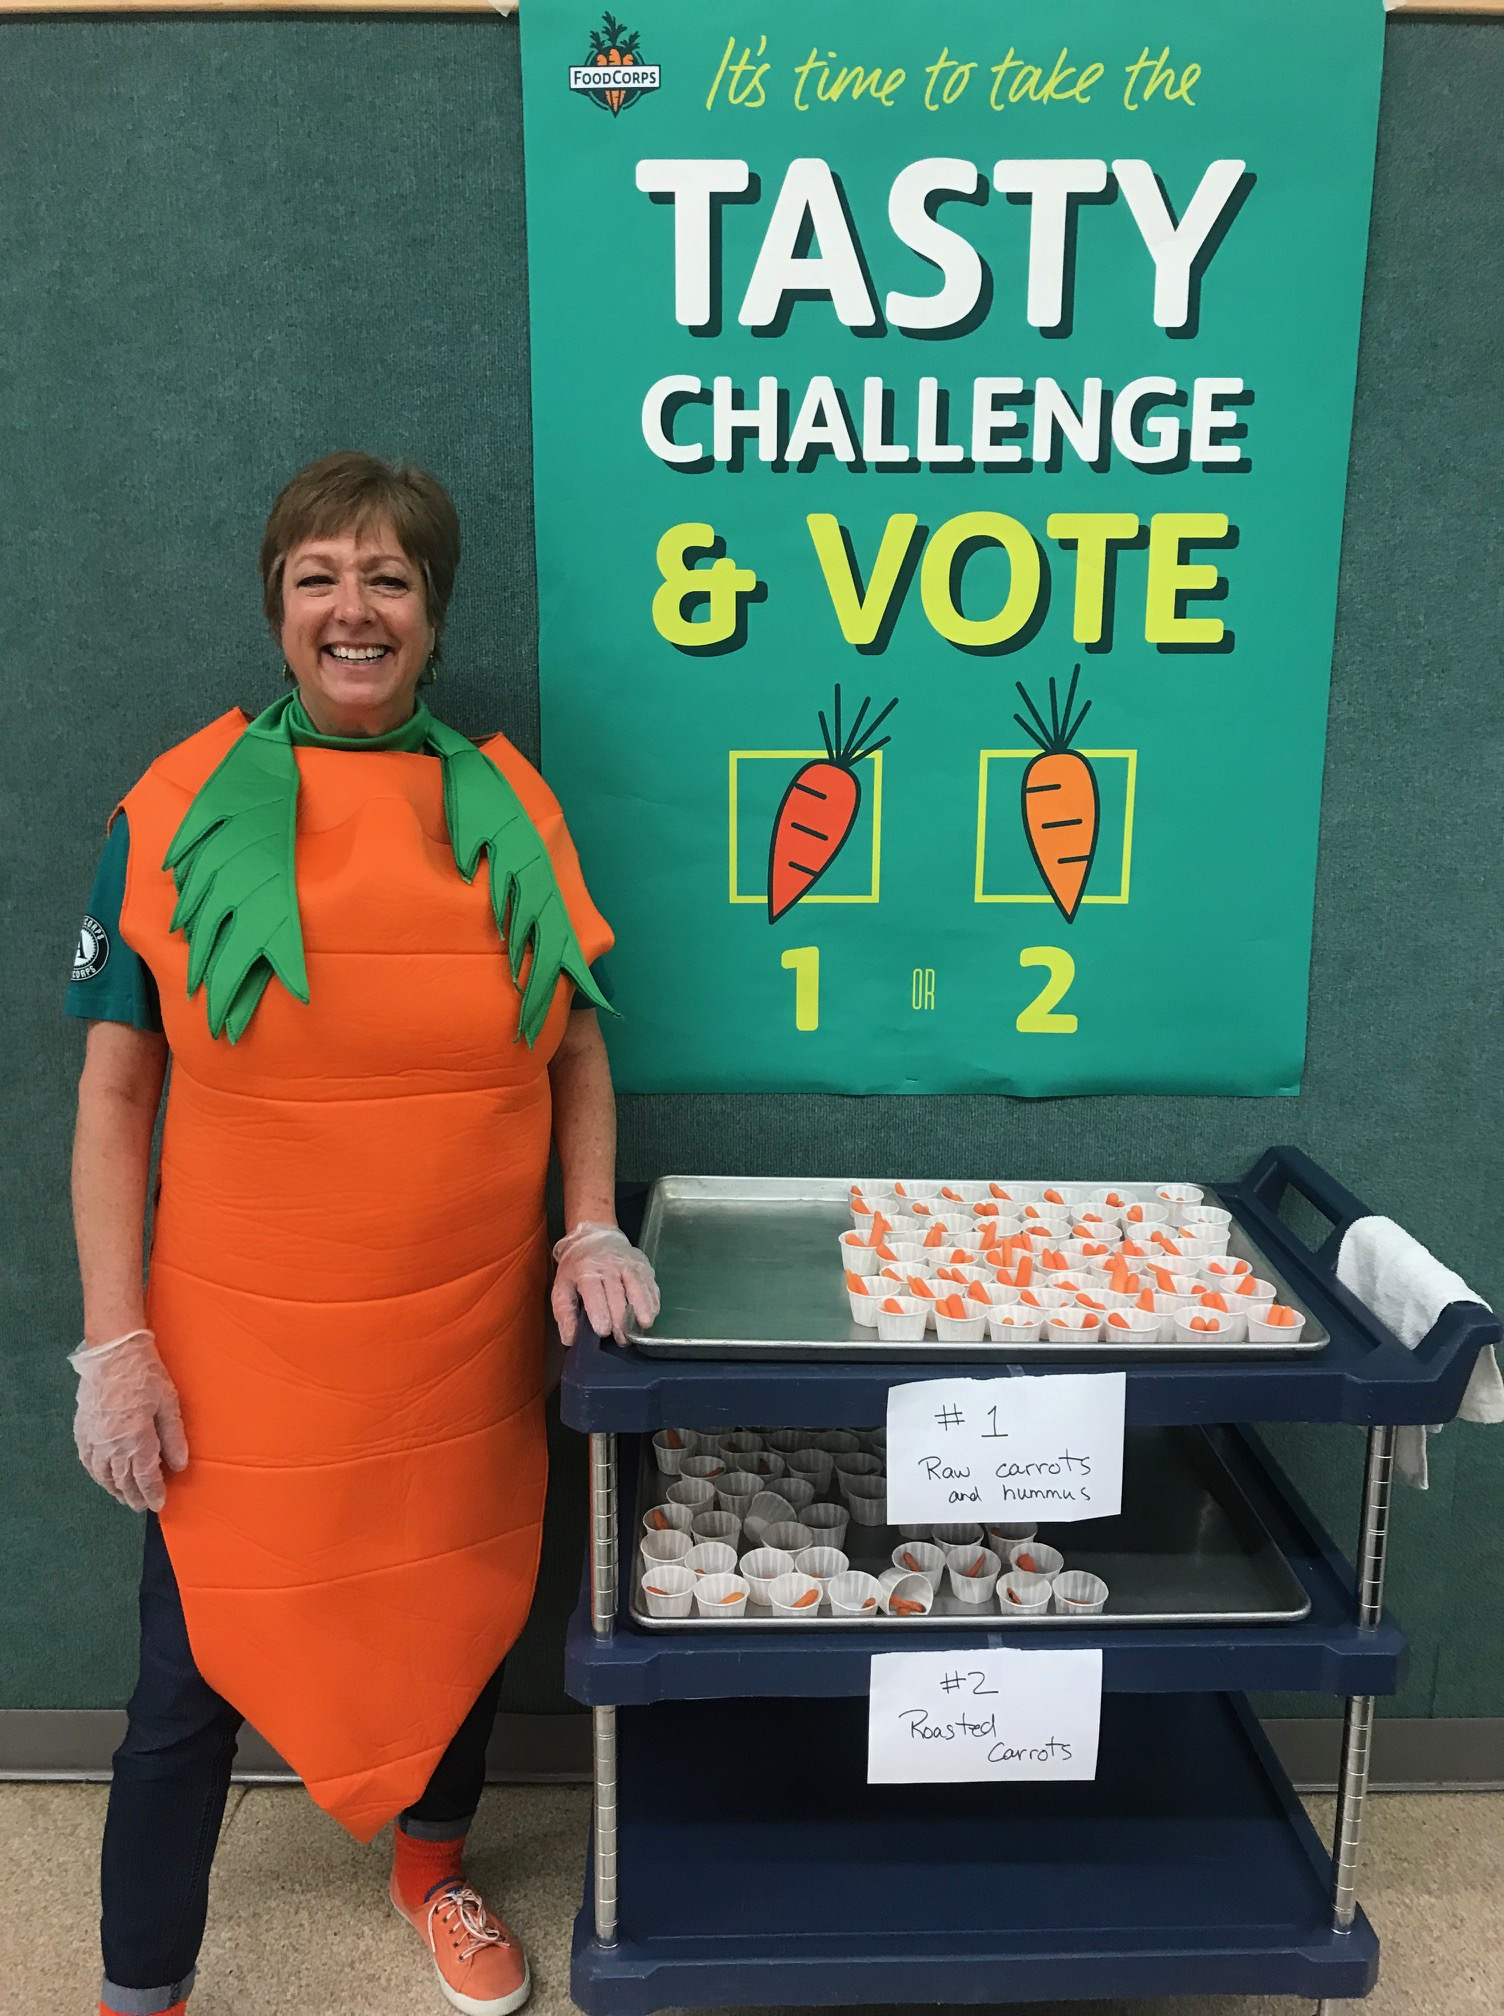 Tracy in carrot costume